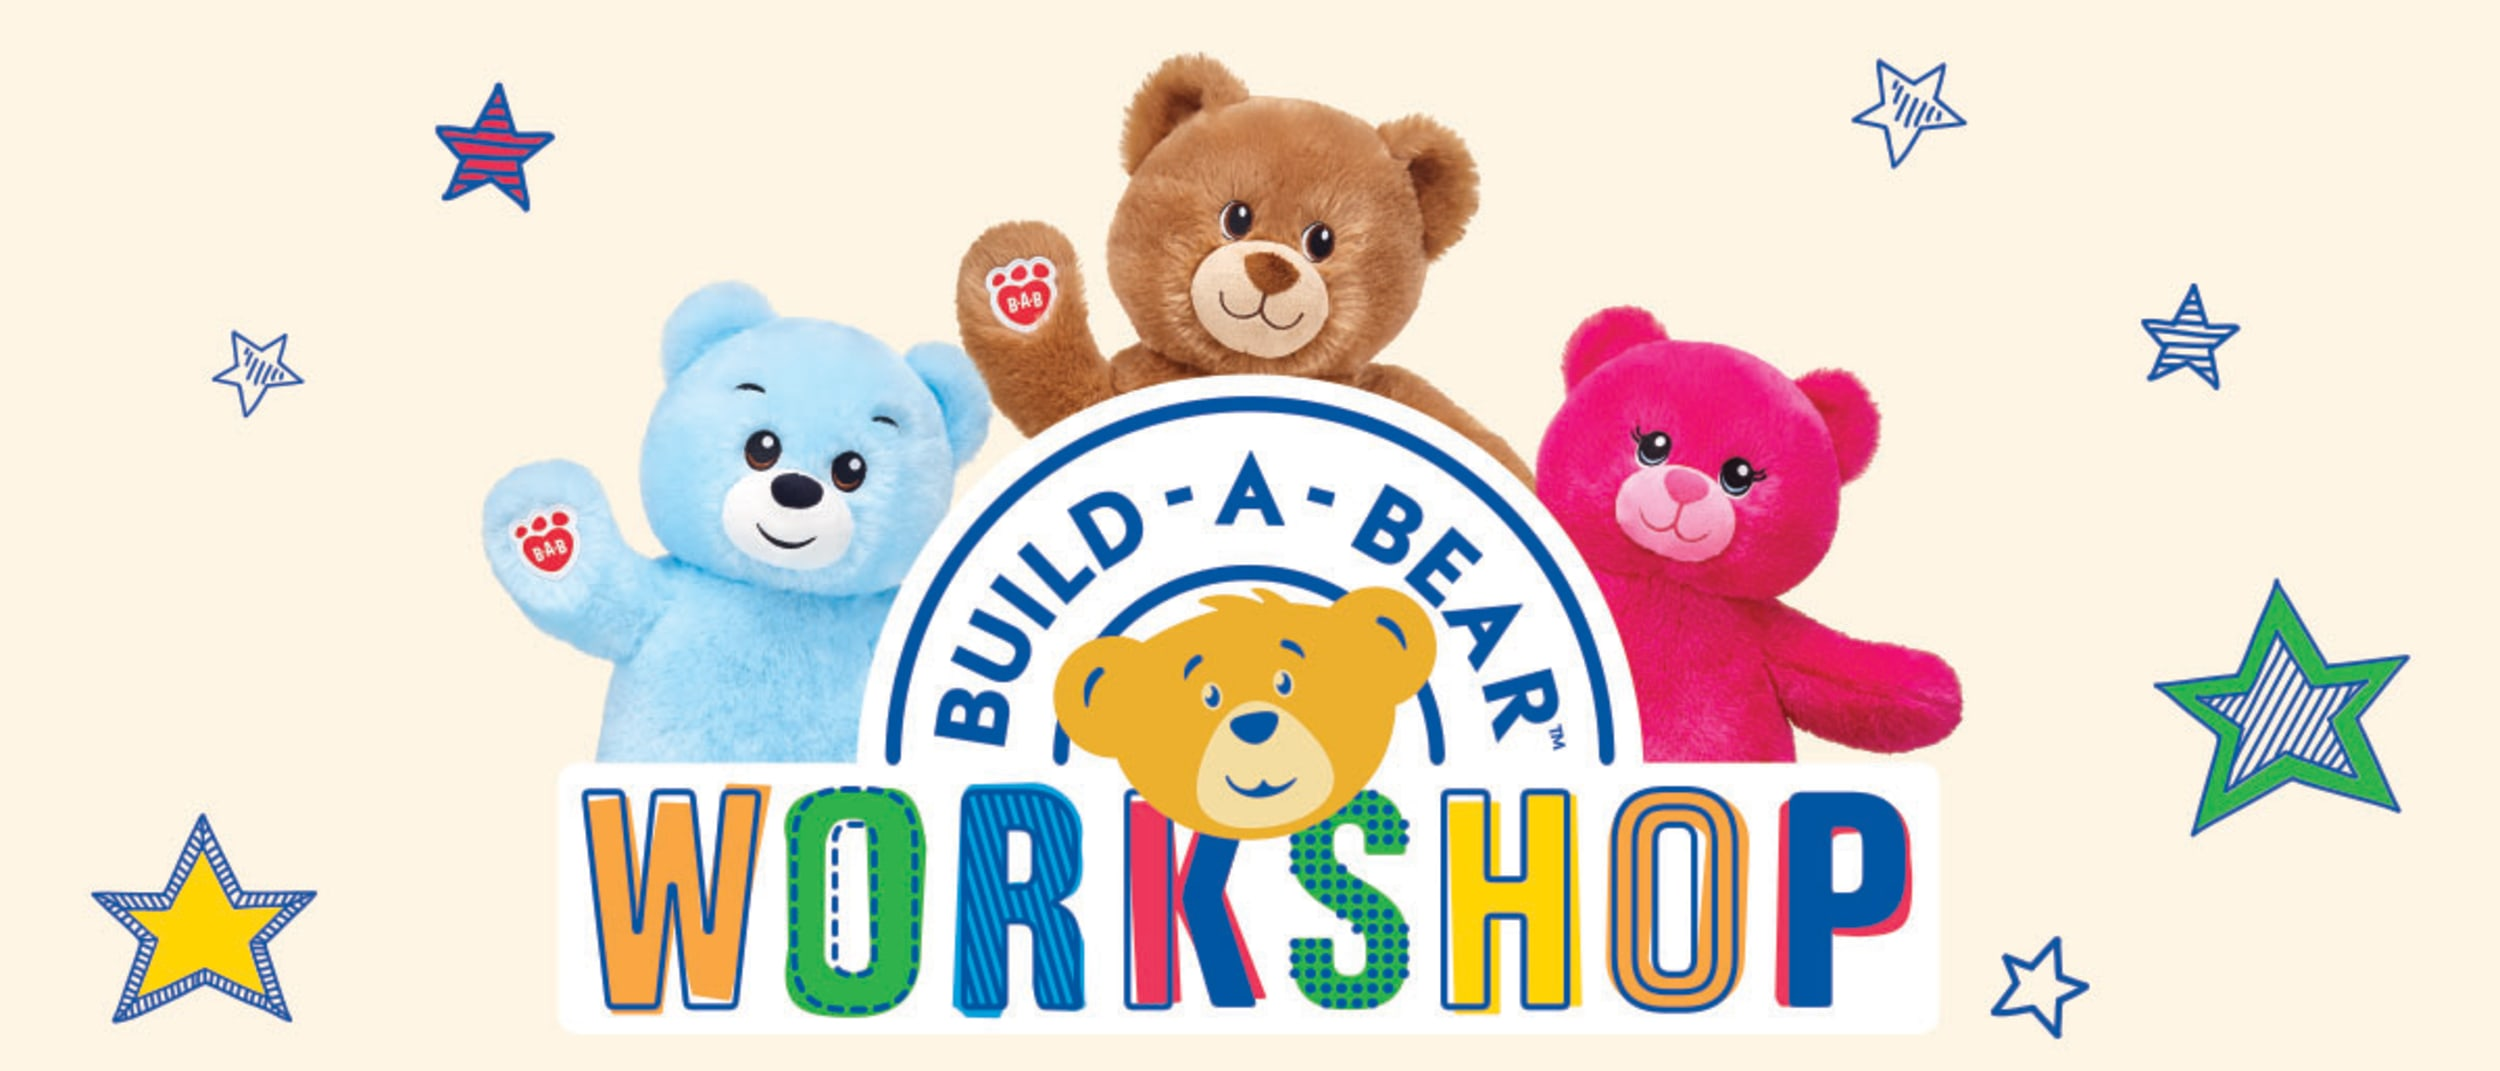 Build a bear workshop clipart vector freeuse download Event - Build-A-Bear Workshop | SOLD OUT vector freeuse download